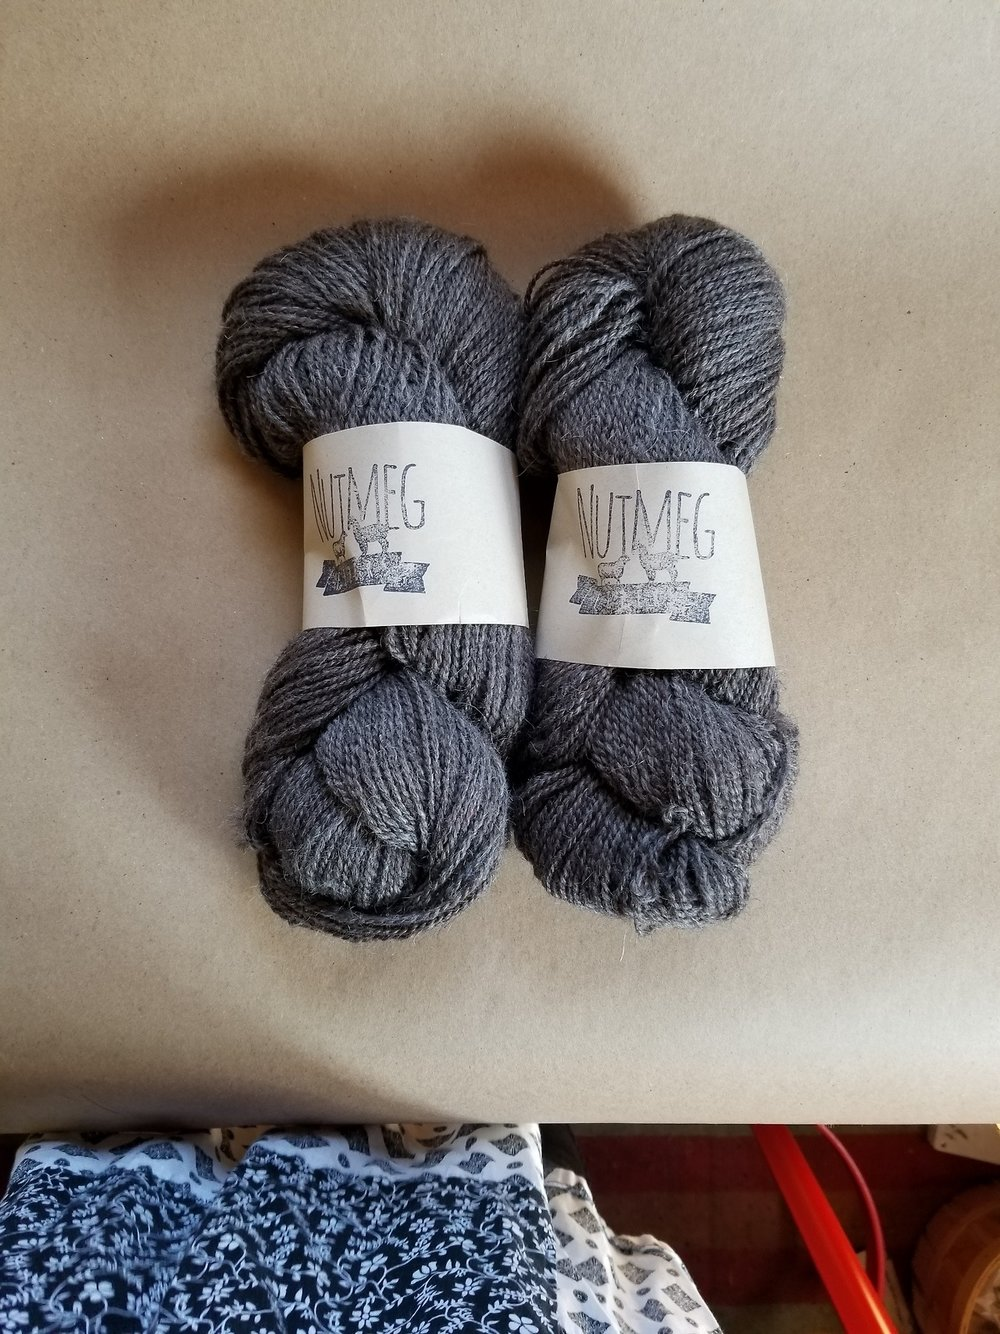 Sending off my last two skeins of our Nutmeg Fibers Farm Fibers' first batch from 2 years ago. It's a bit emotional remembering how this whole journey has begun, is currently happening, and how I hope it continues. I hope someone will love these as much as I did!